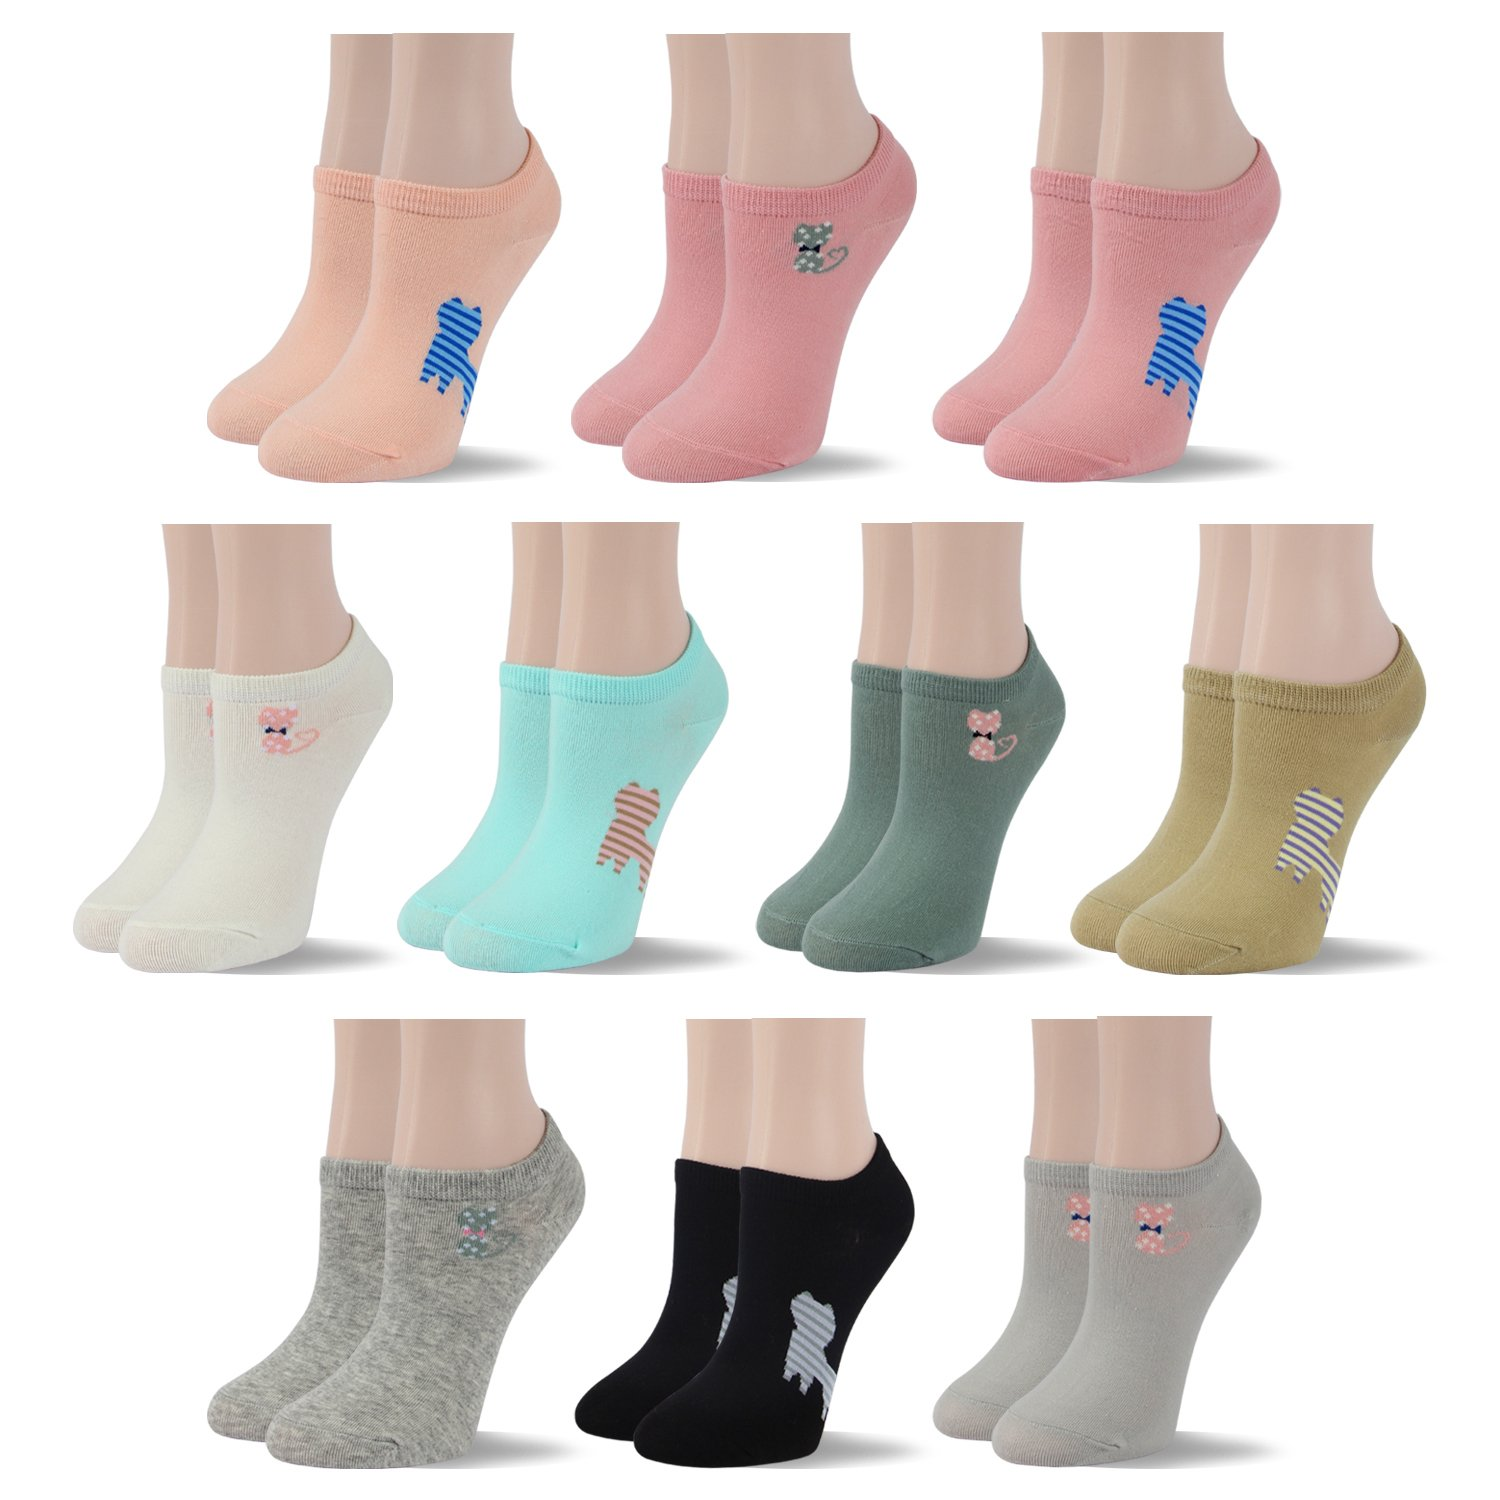 RioRiva Women Fashion Designs No Show Socks - Low cut Cotton Ankle Socks Patterned Style (US Women Size 5-9/EU 35.5-40, WSK115-10 Pack solid colored cat)